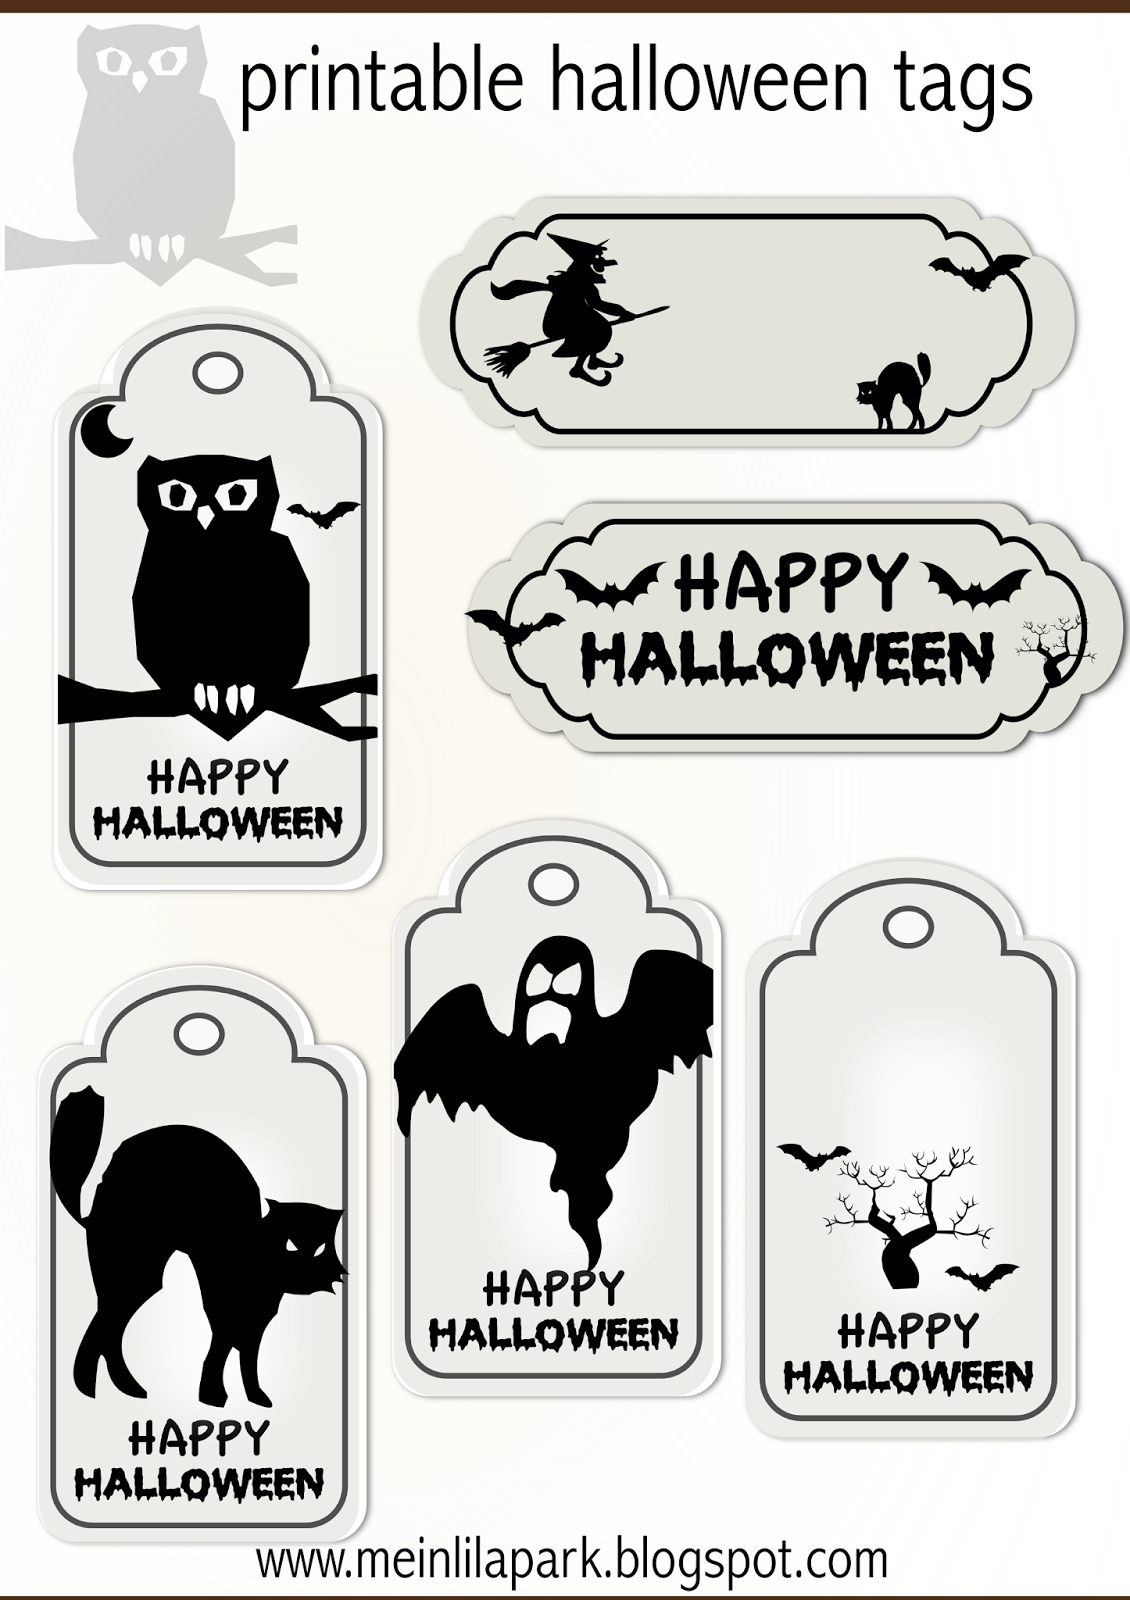 Free Printable Halloween Tags - Druckvorlage Halloween - Freebie - Free Printable Halloween Tags